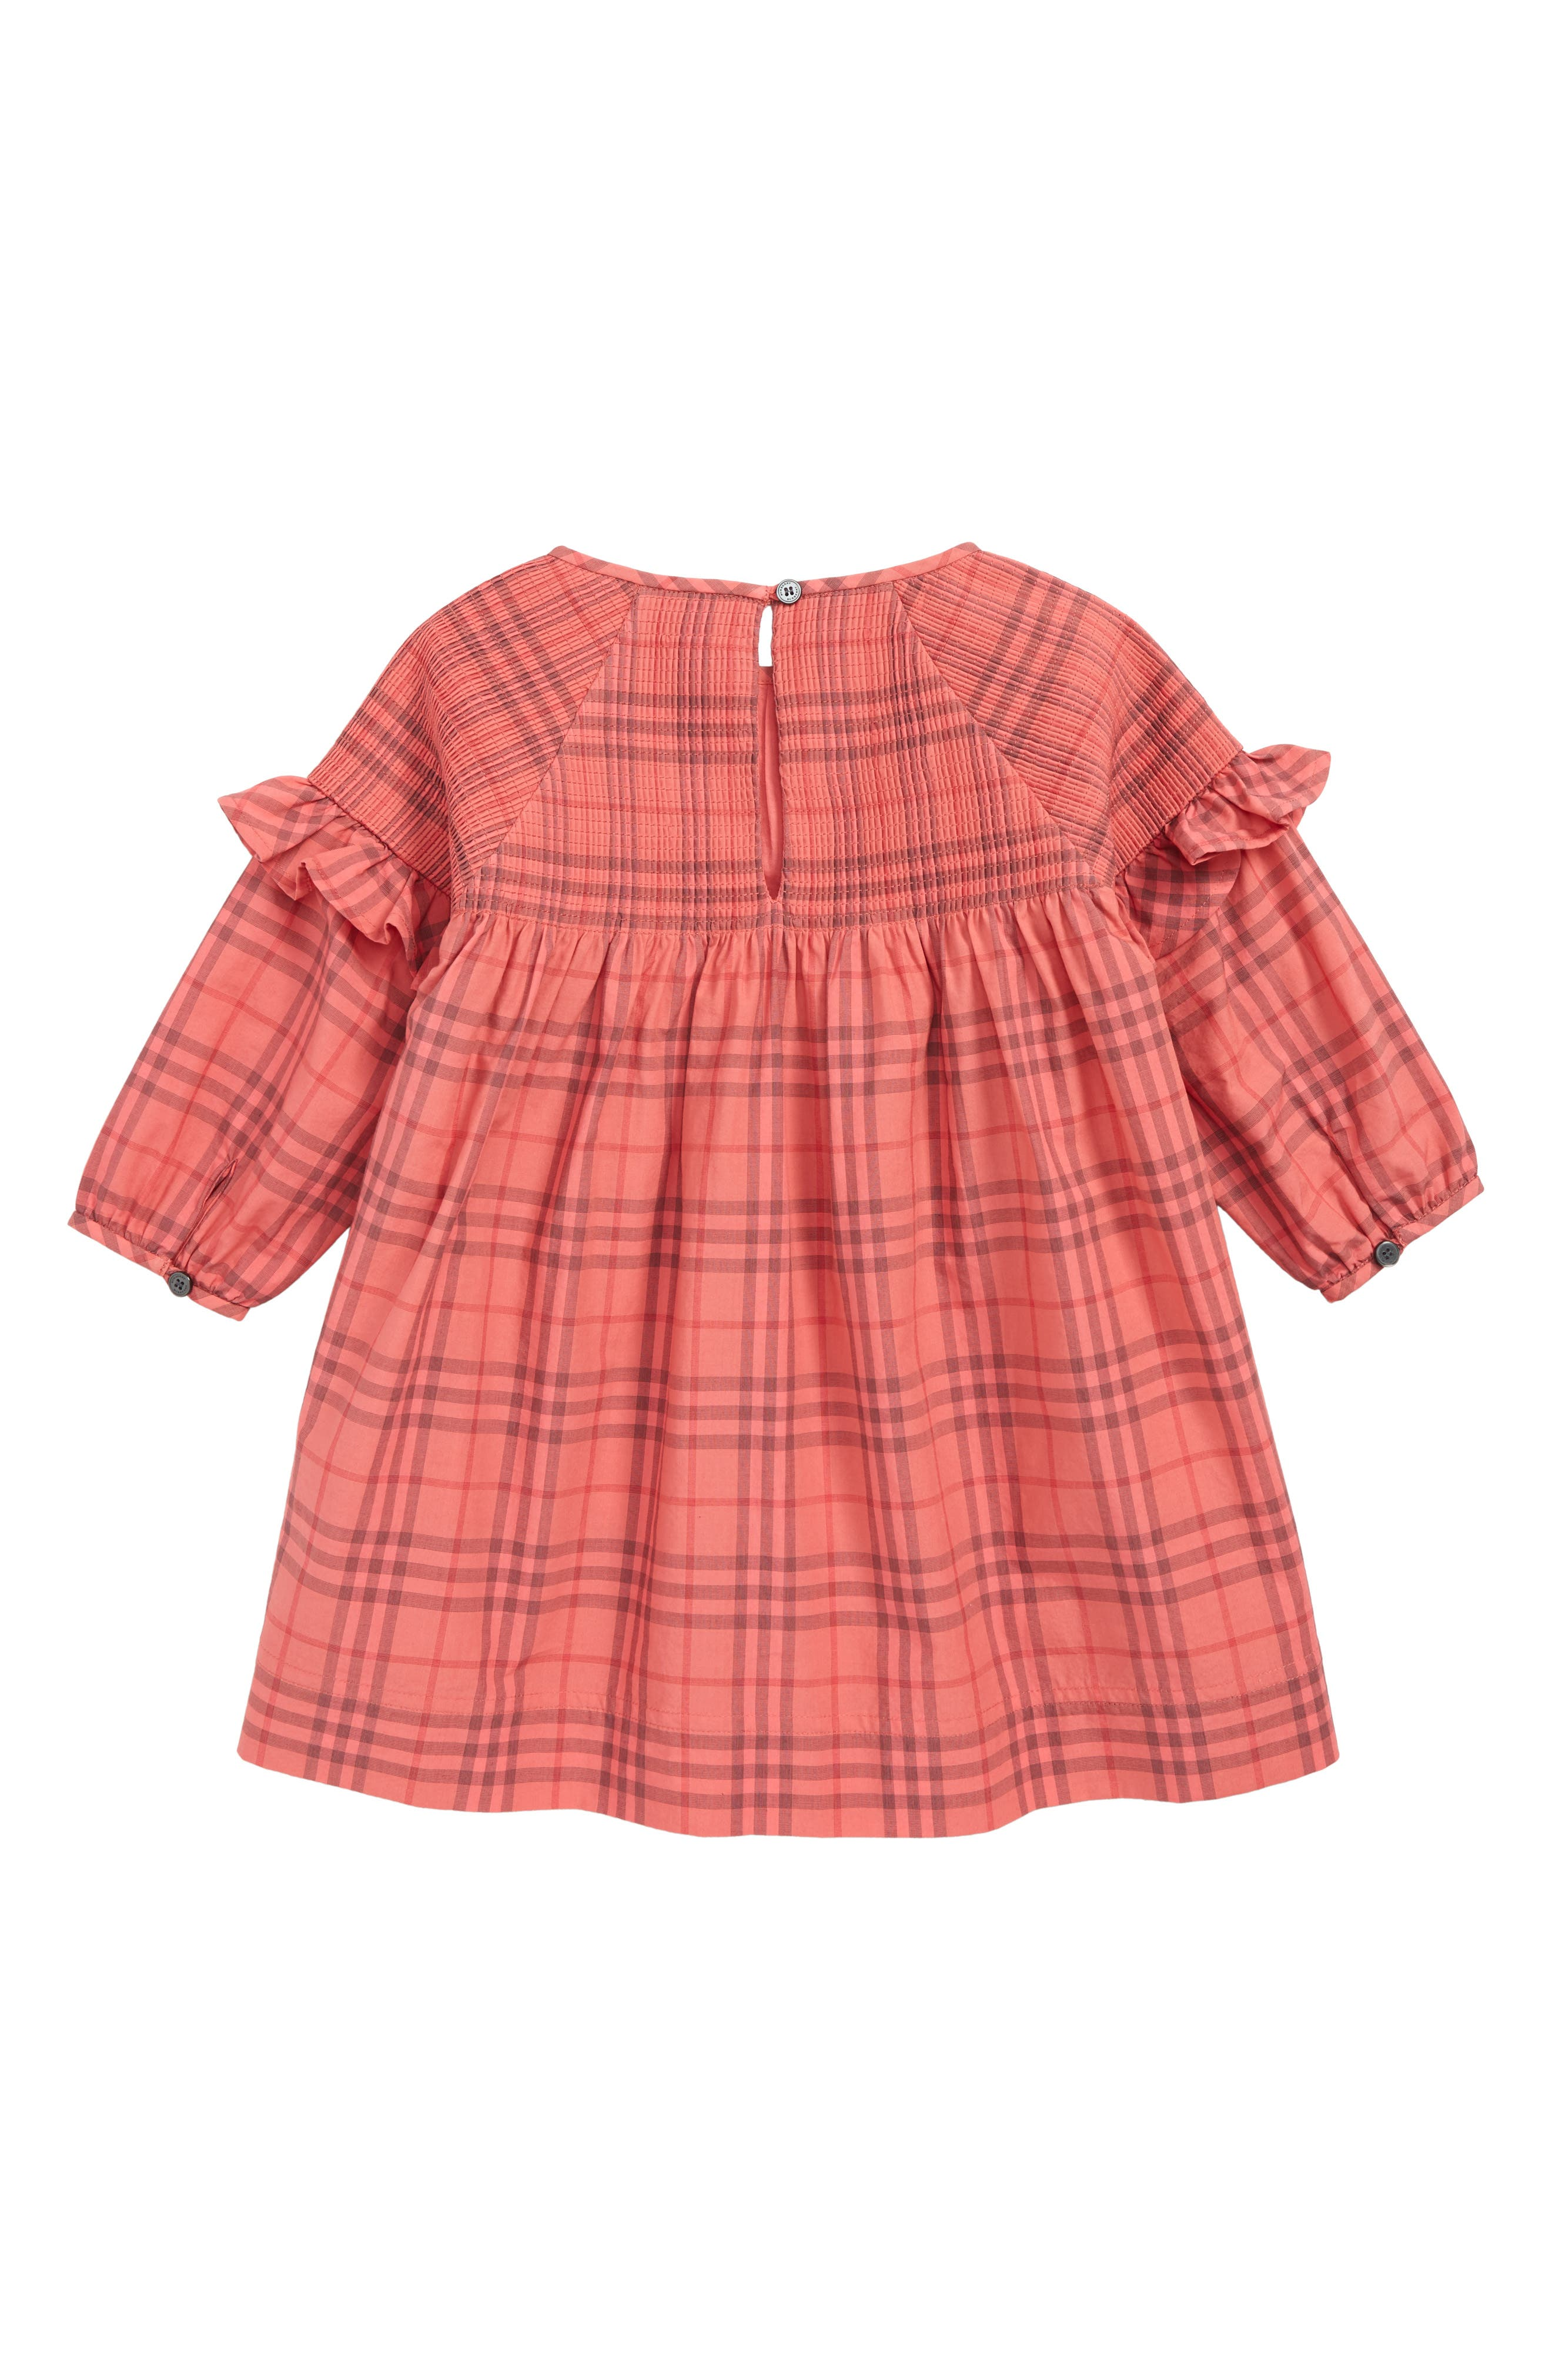 BURBERRY, Mini Loralie Ruffle Detail Check Cotton Dress, Alternate thumbnail 2, color, CORAL RED